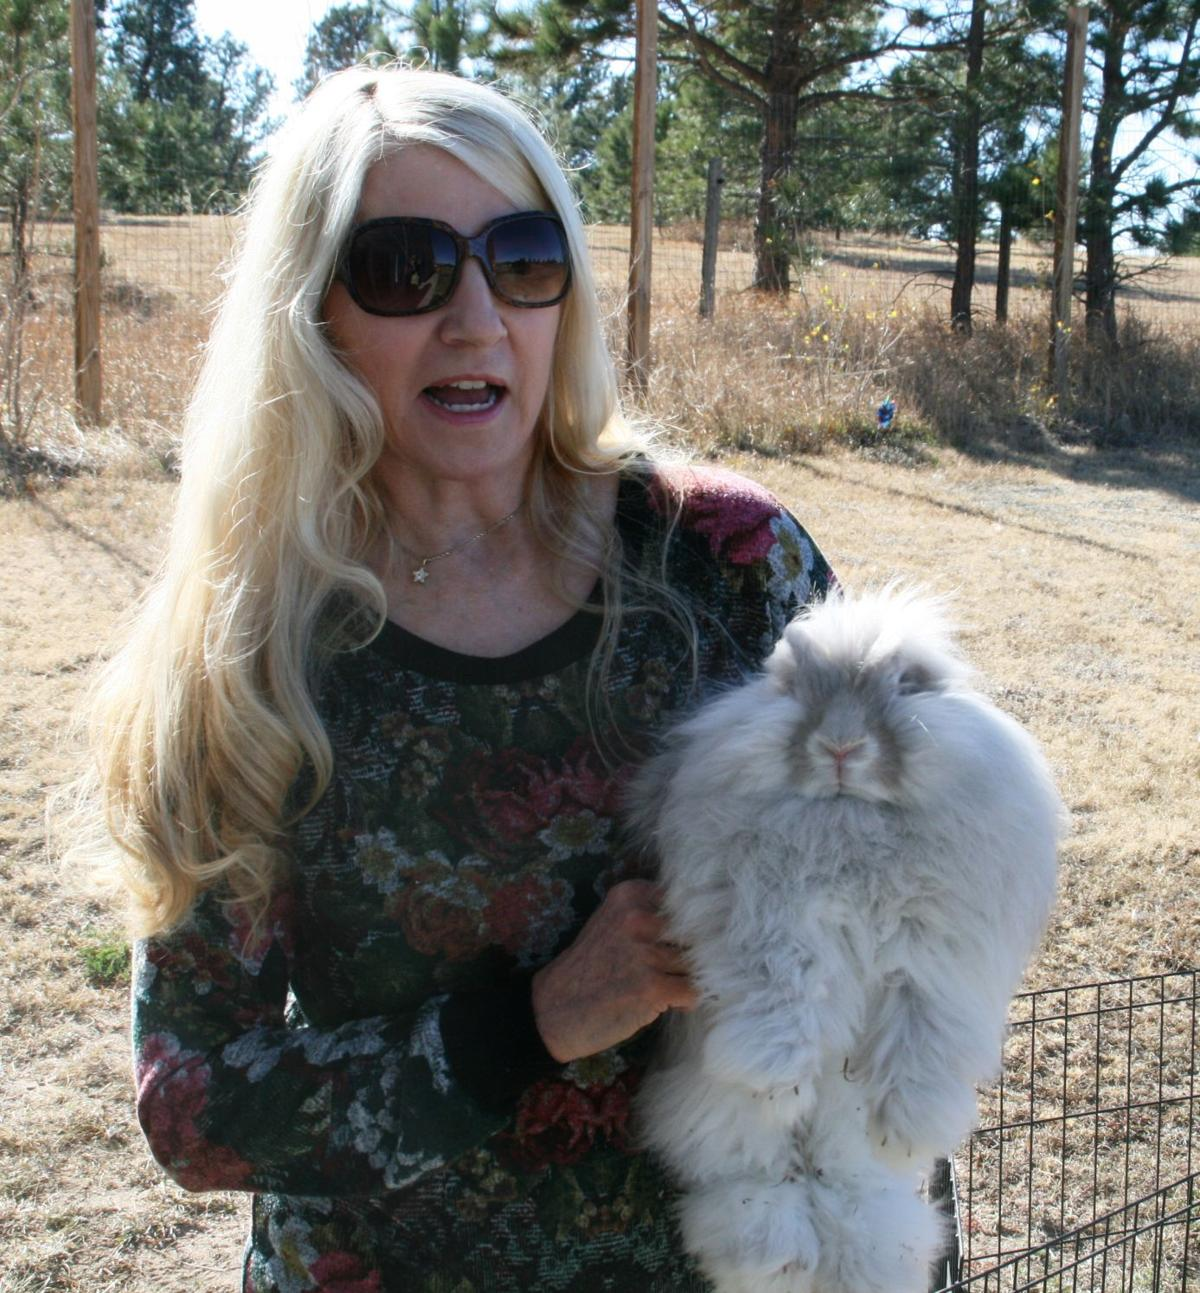 The Country Life: Angora rabbits find home, purpose at Black Forest's Woodlake Woolies